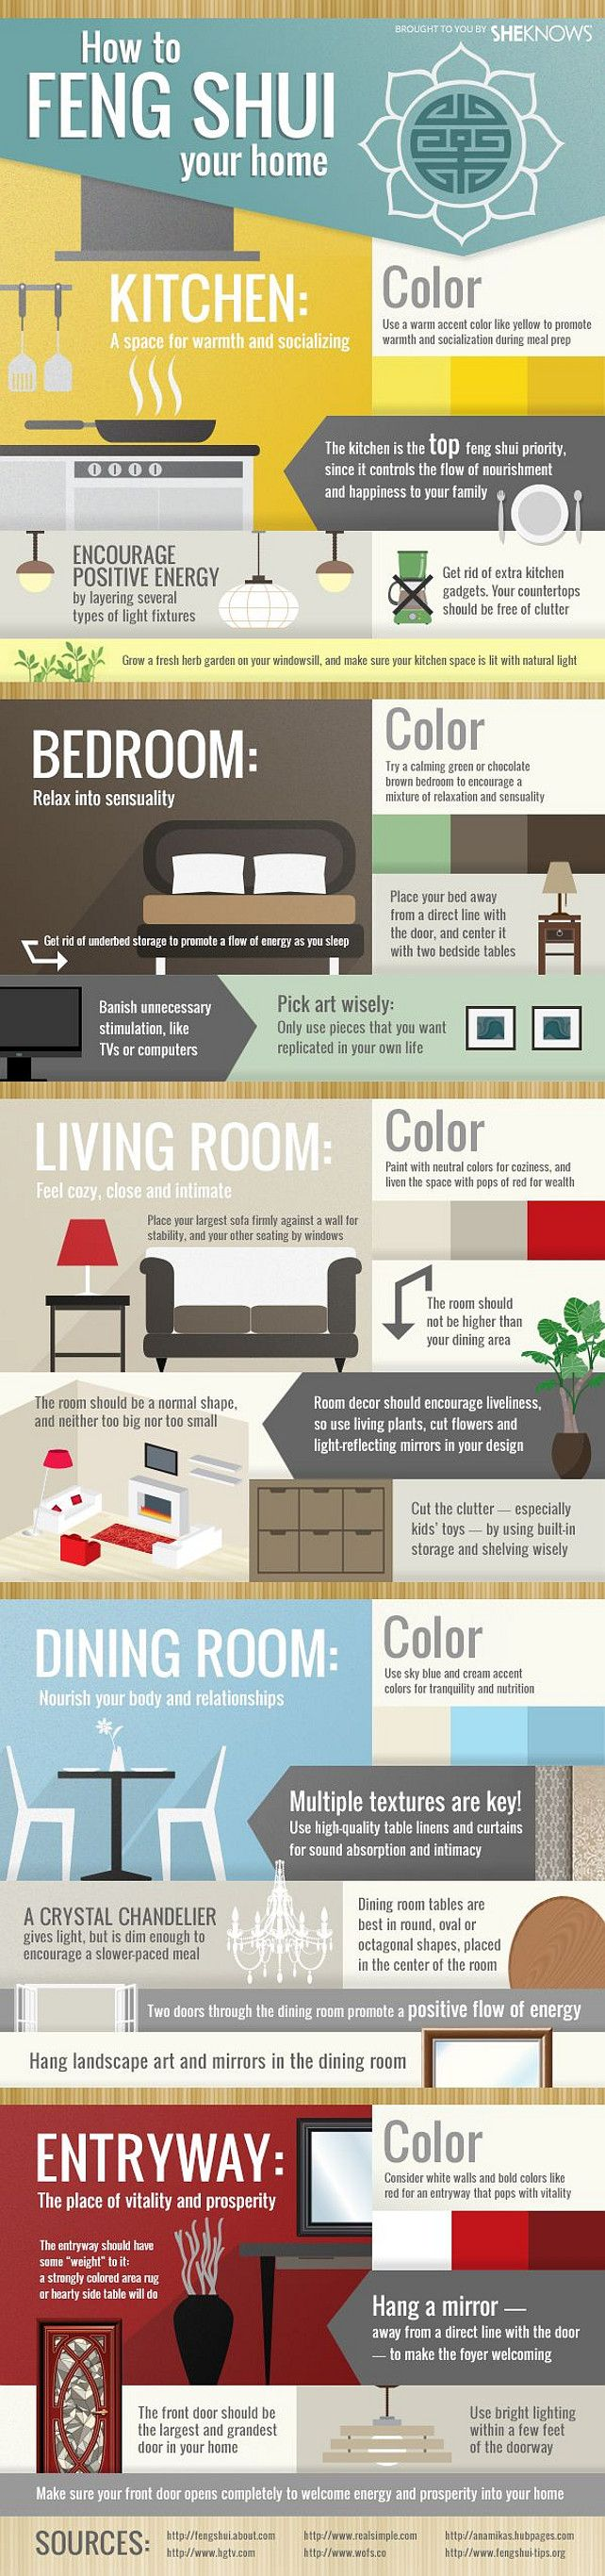 20 Charts That Make Combining Colors So Much Easier Feng Shui TipsPinterest